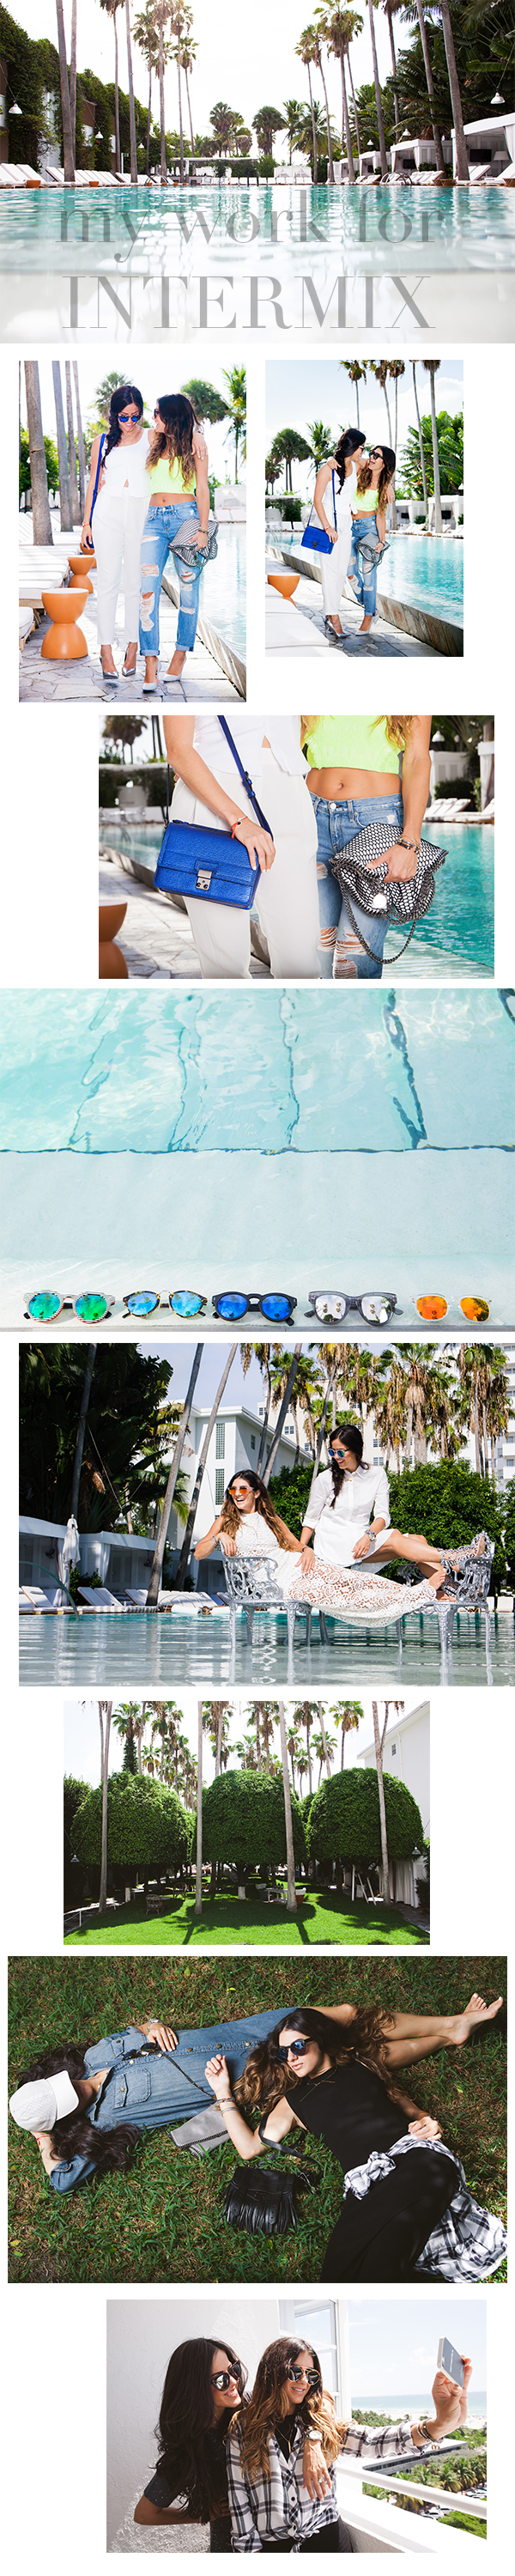 SWIM WEEK WITH INTERMIX & THE DELANO